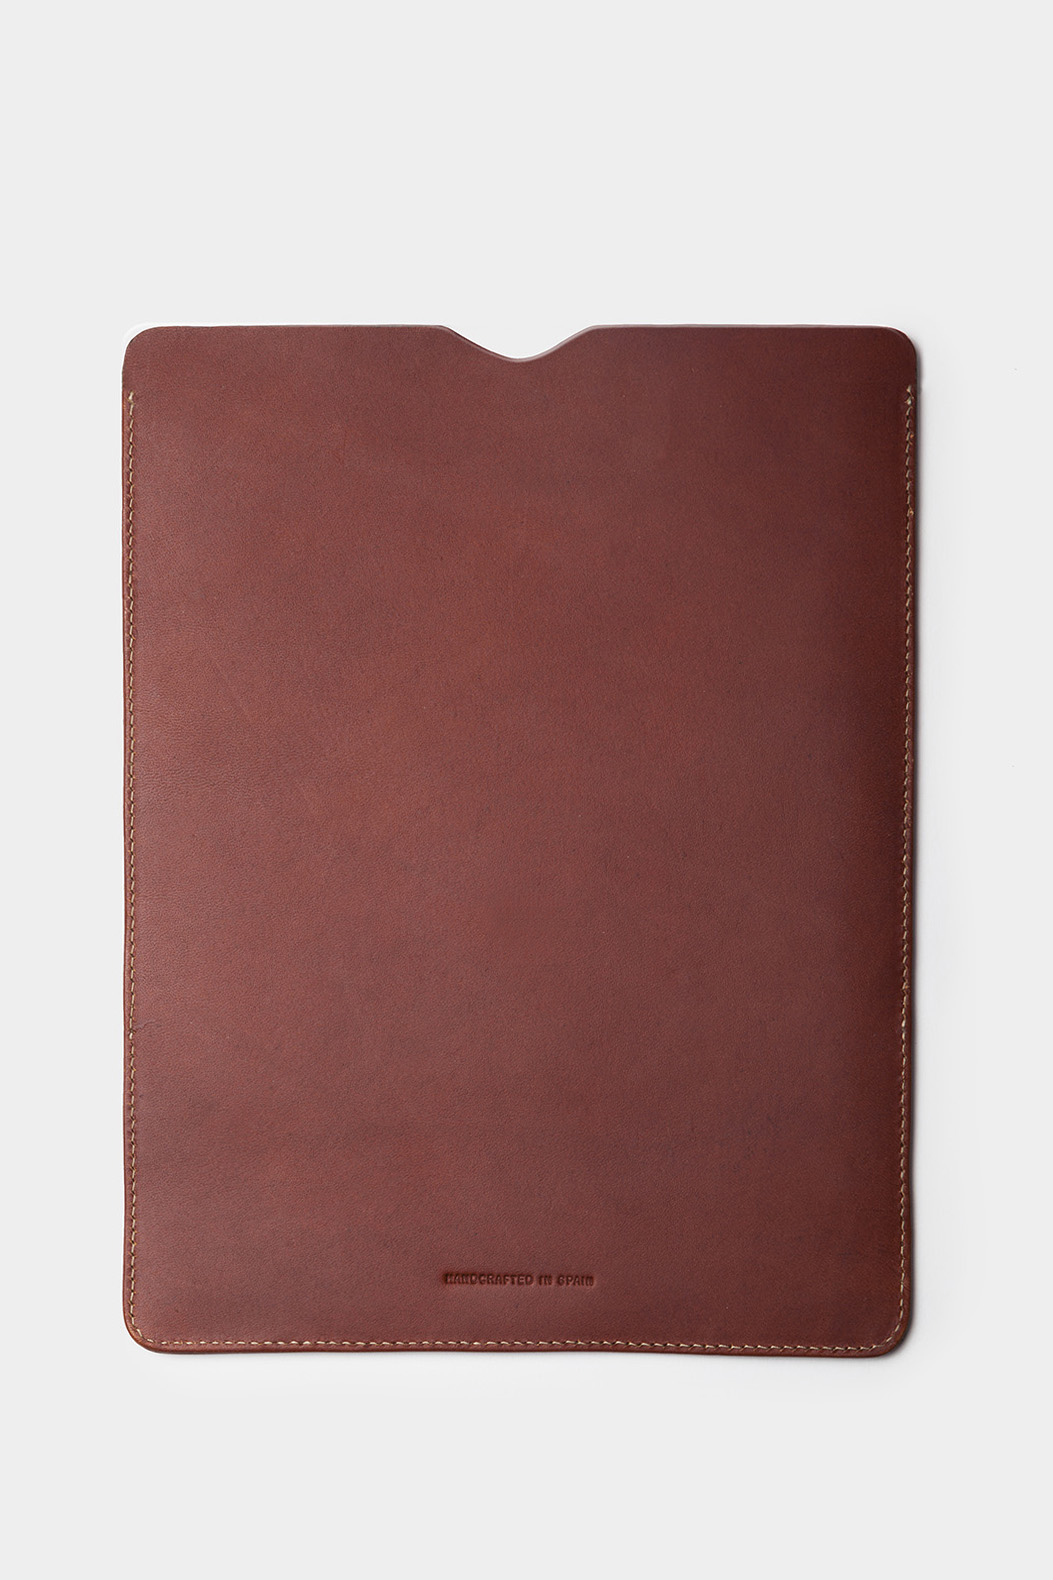 iPad Case handcrafted in Spain